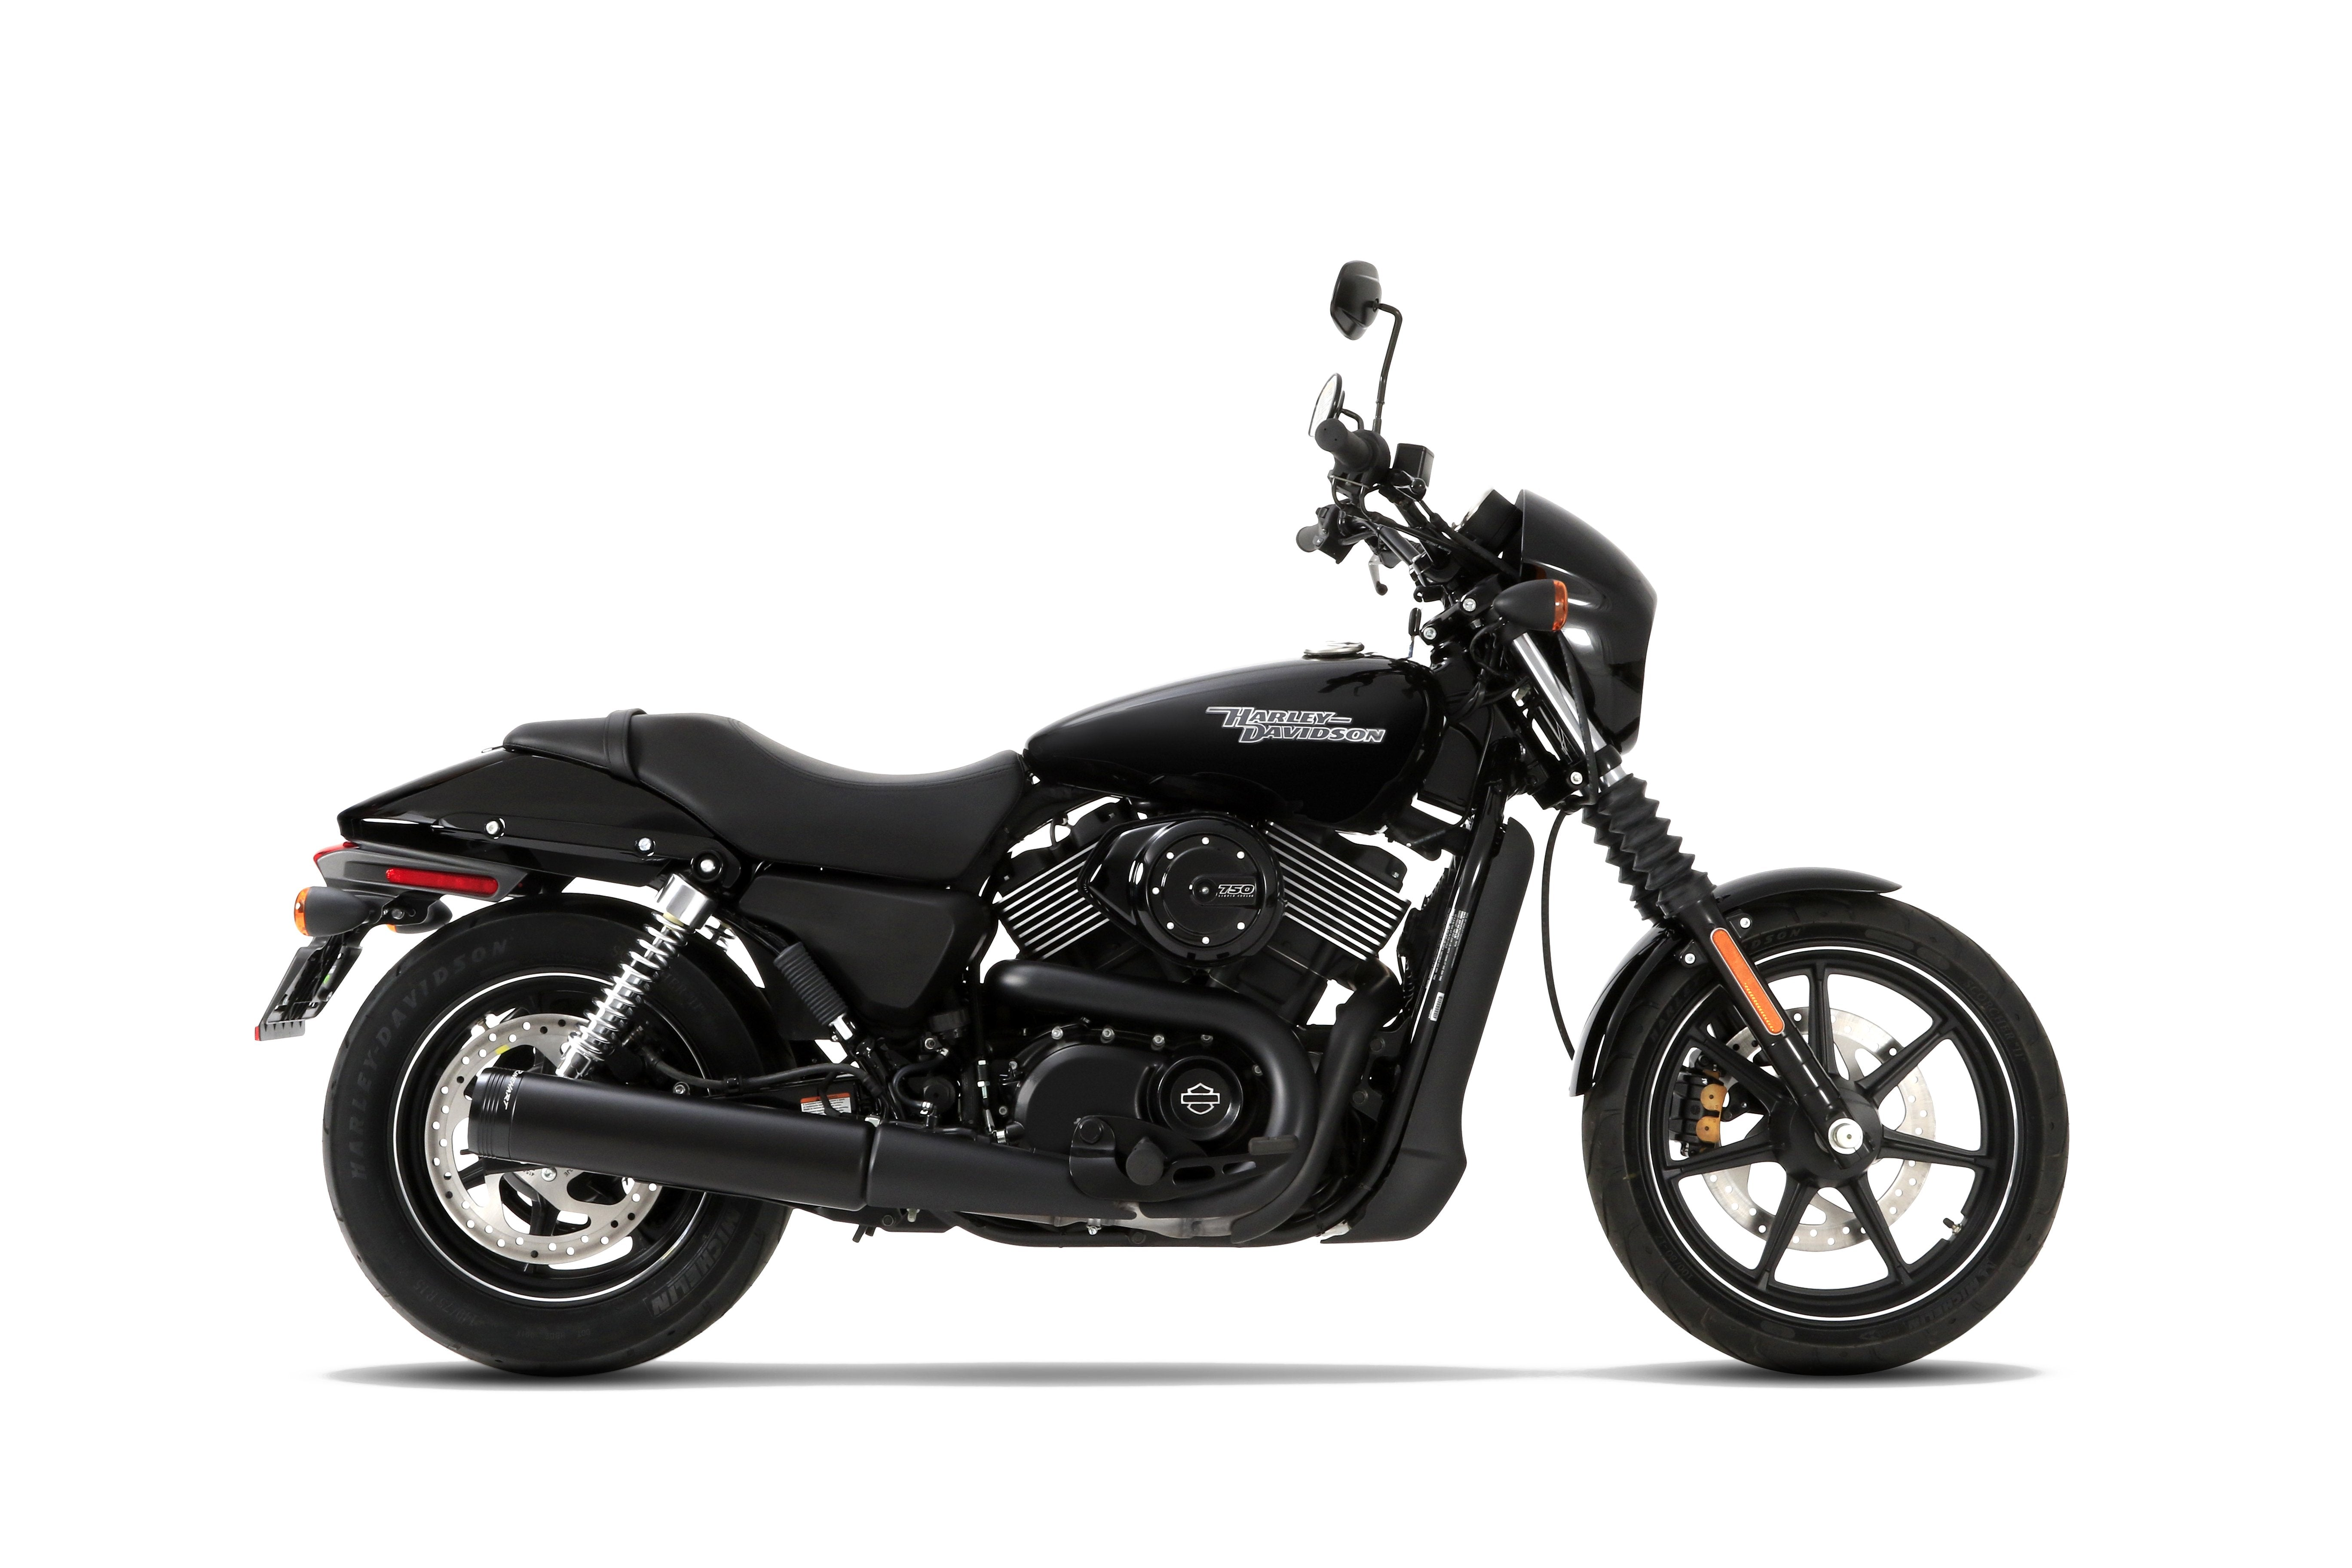 Harley Davidson Street 750 / Street Rod Black Slip-on